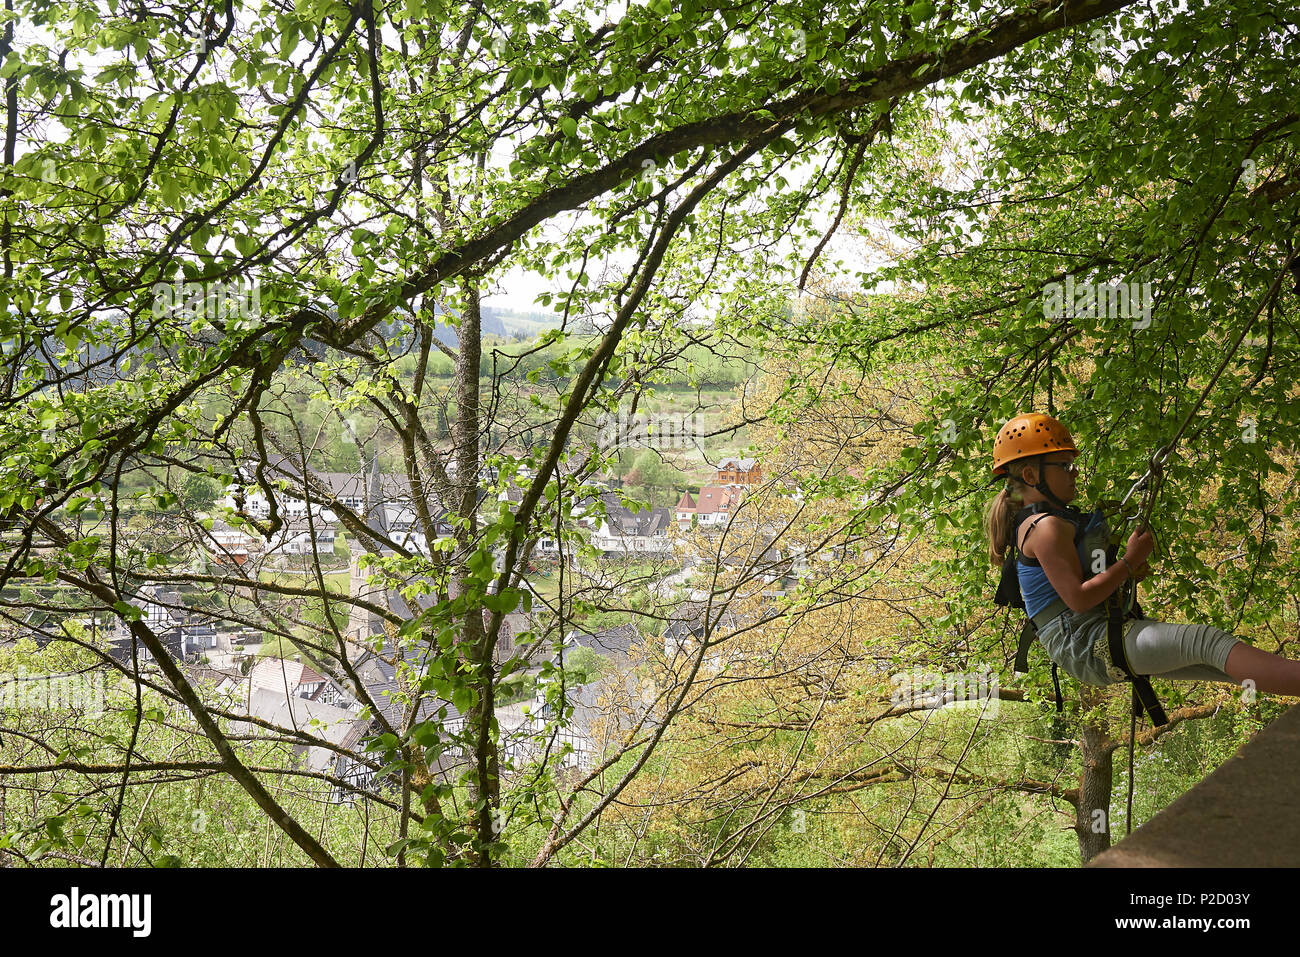 Young preteen girl trying out abseiling down a wall on a mountain with a village far away in the background Stock Photo